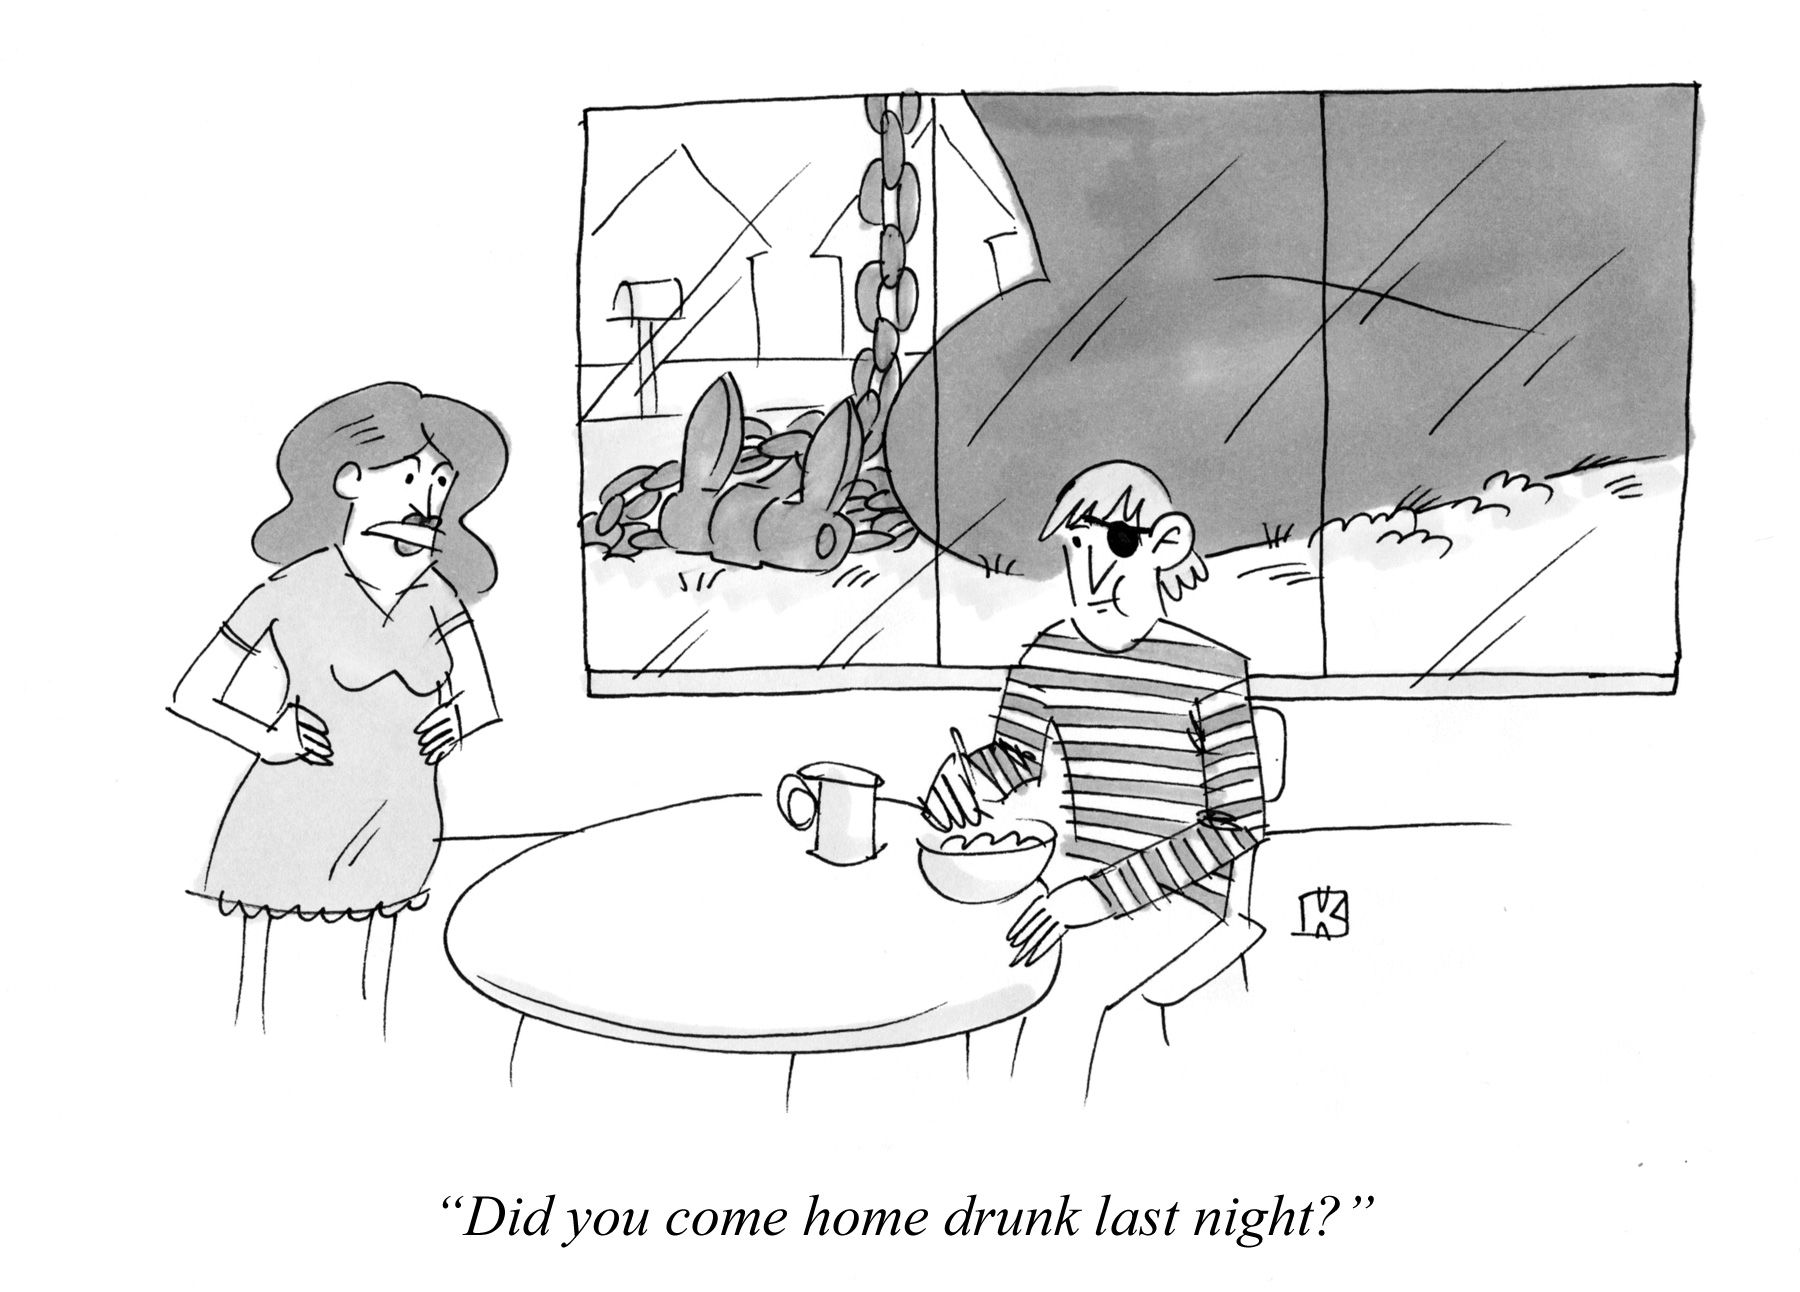 Cartoon about a sailor coming home drunk